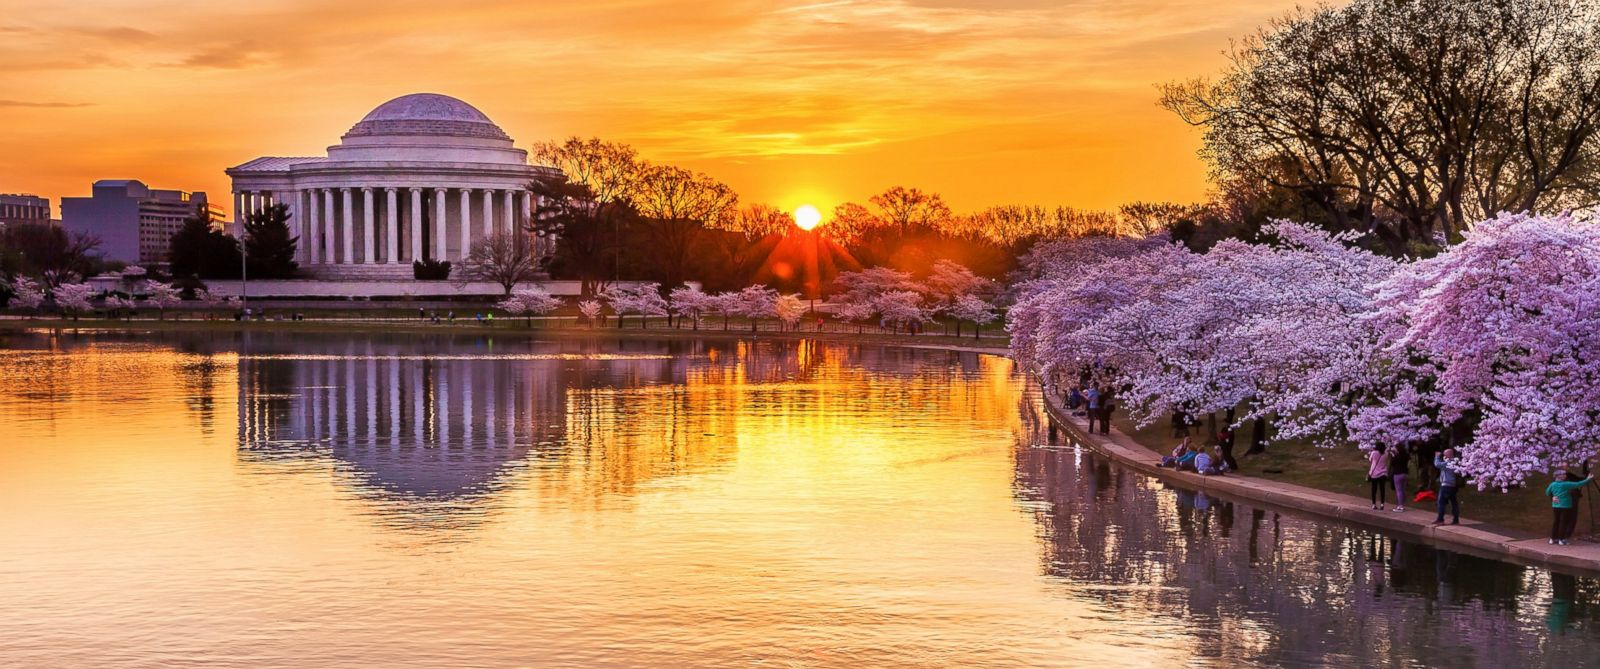 PHOTO: Cherry blossoms are pictured during peak bloom at the Tidal Basin in Washington D.C. in this stock photo.